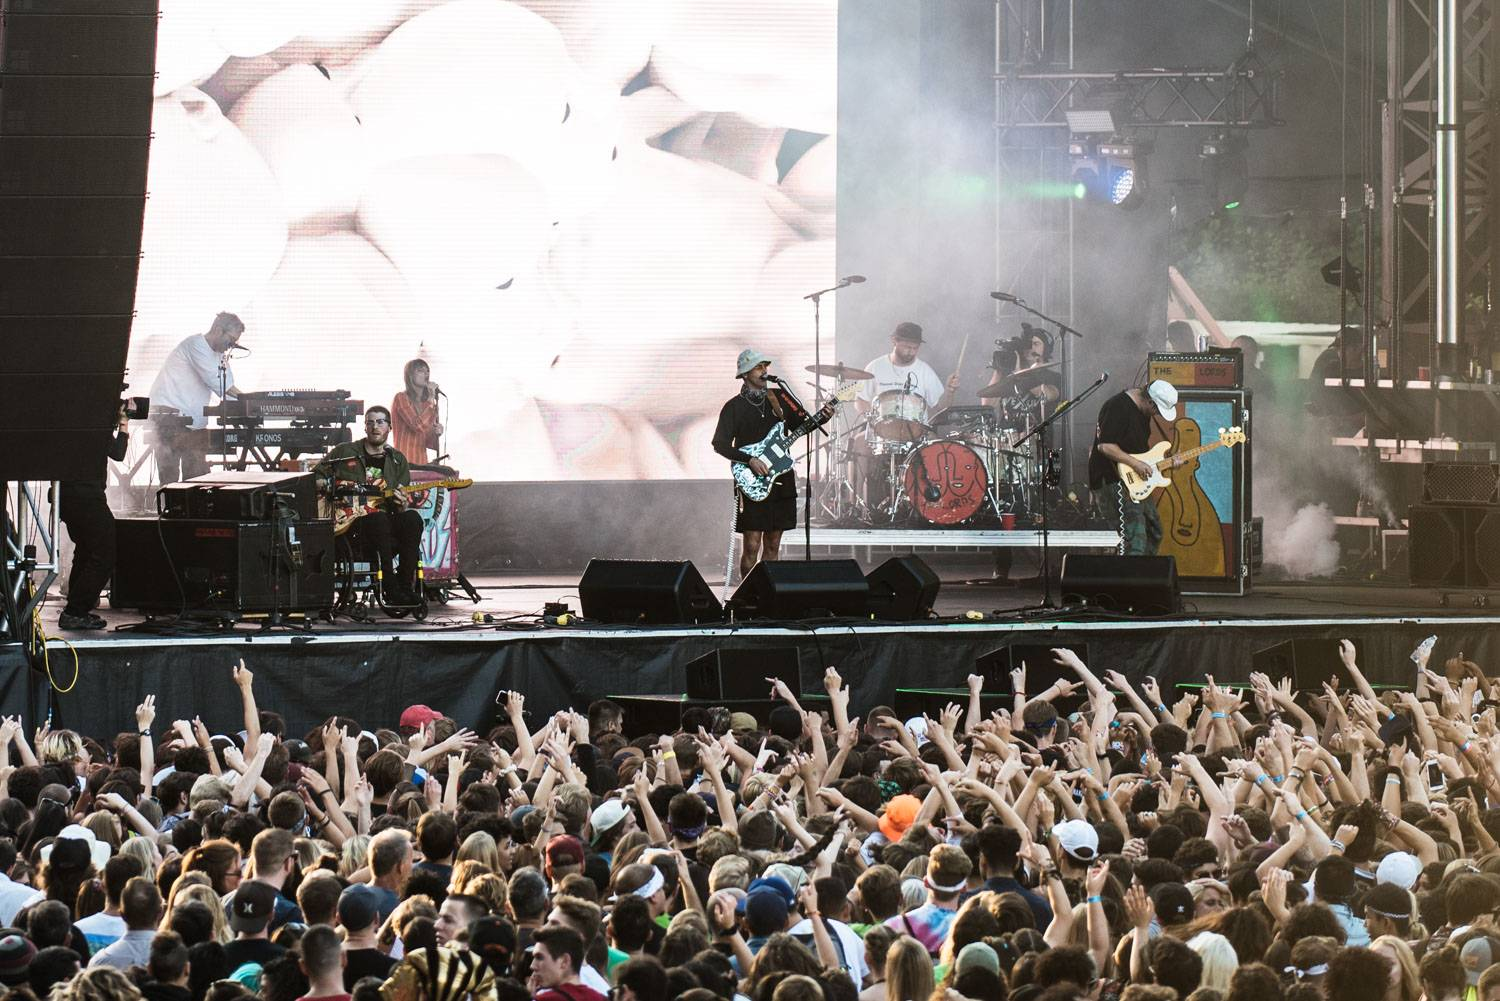 Portugal. The Man at the Bumbershoot Music Festival 2018 - Day 3. Sept 2 2018. Pavel Boiko photo.